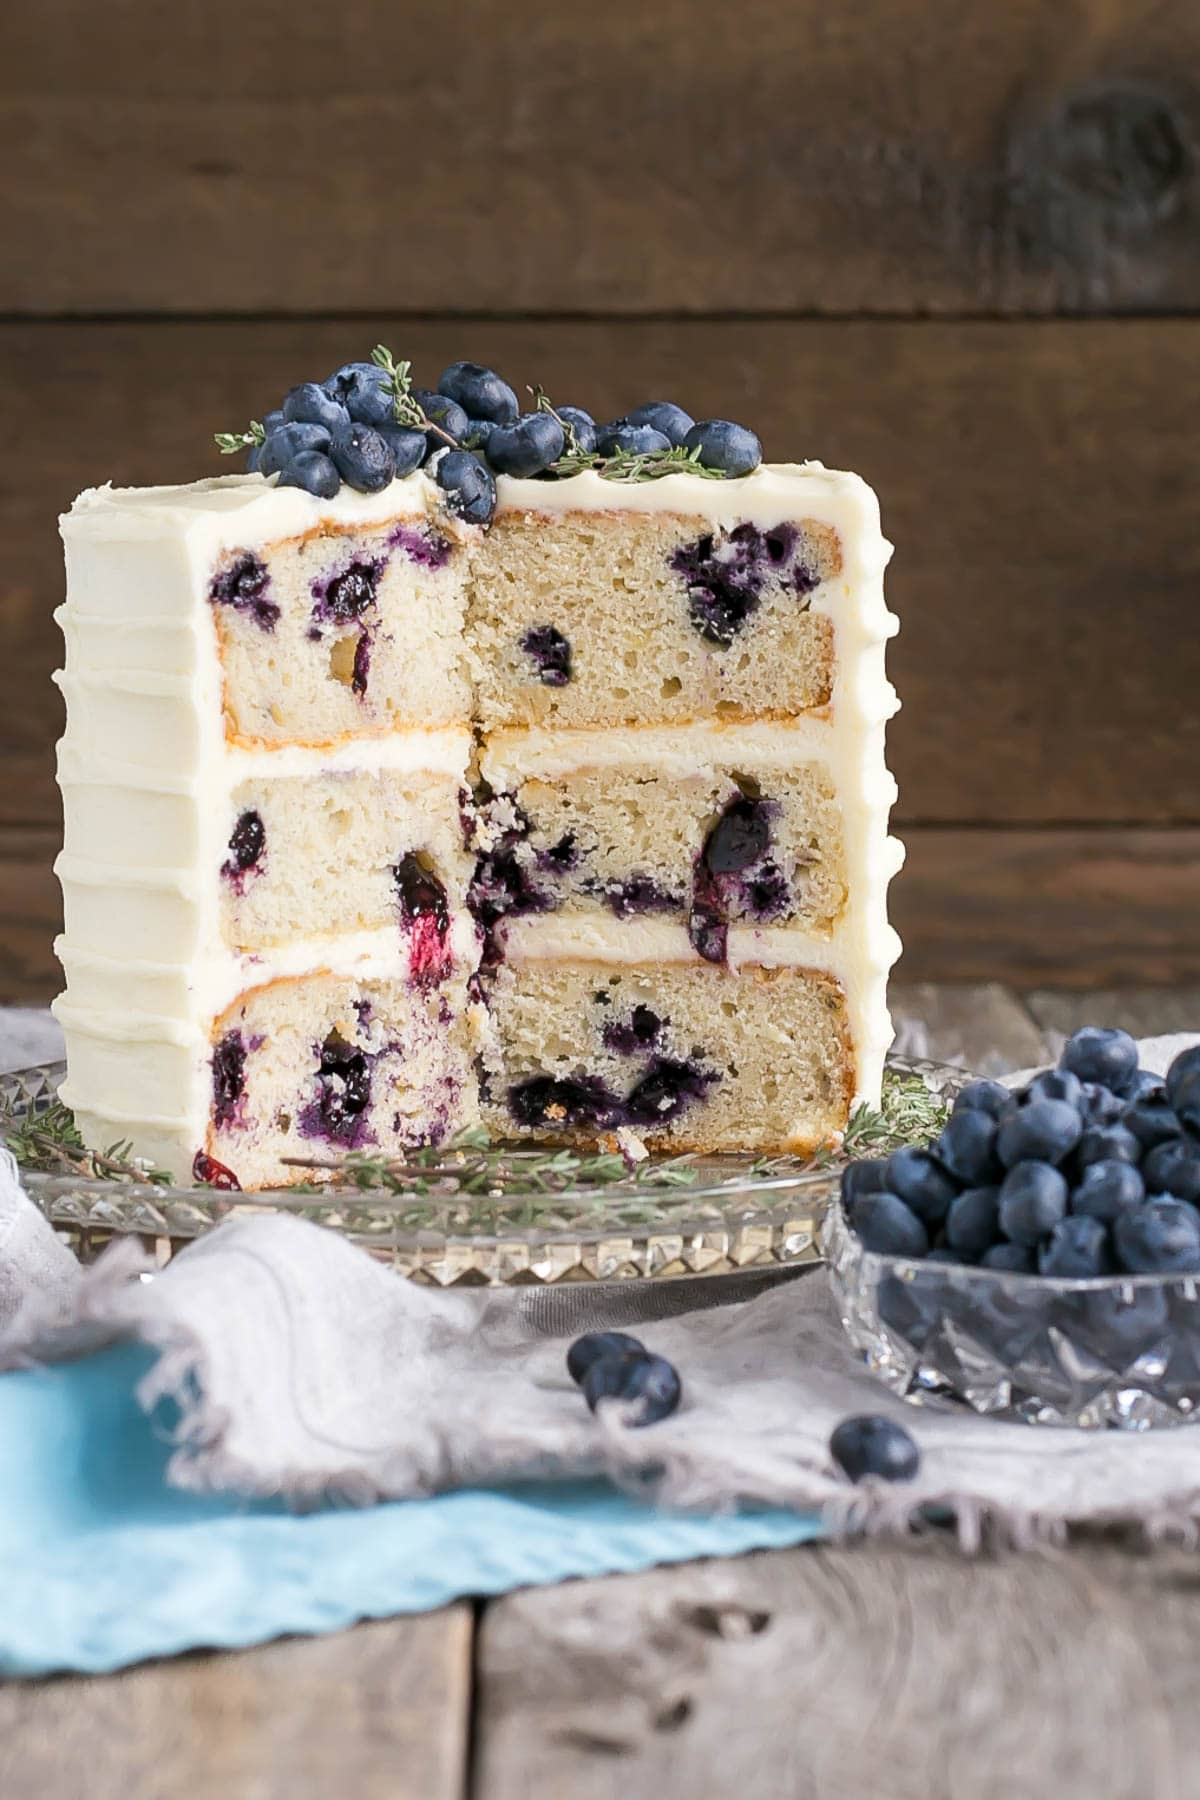 Blueberry Banana Cake with Cream Cheese Frosting with slices cut out.